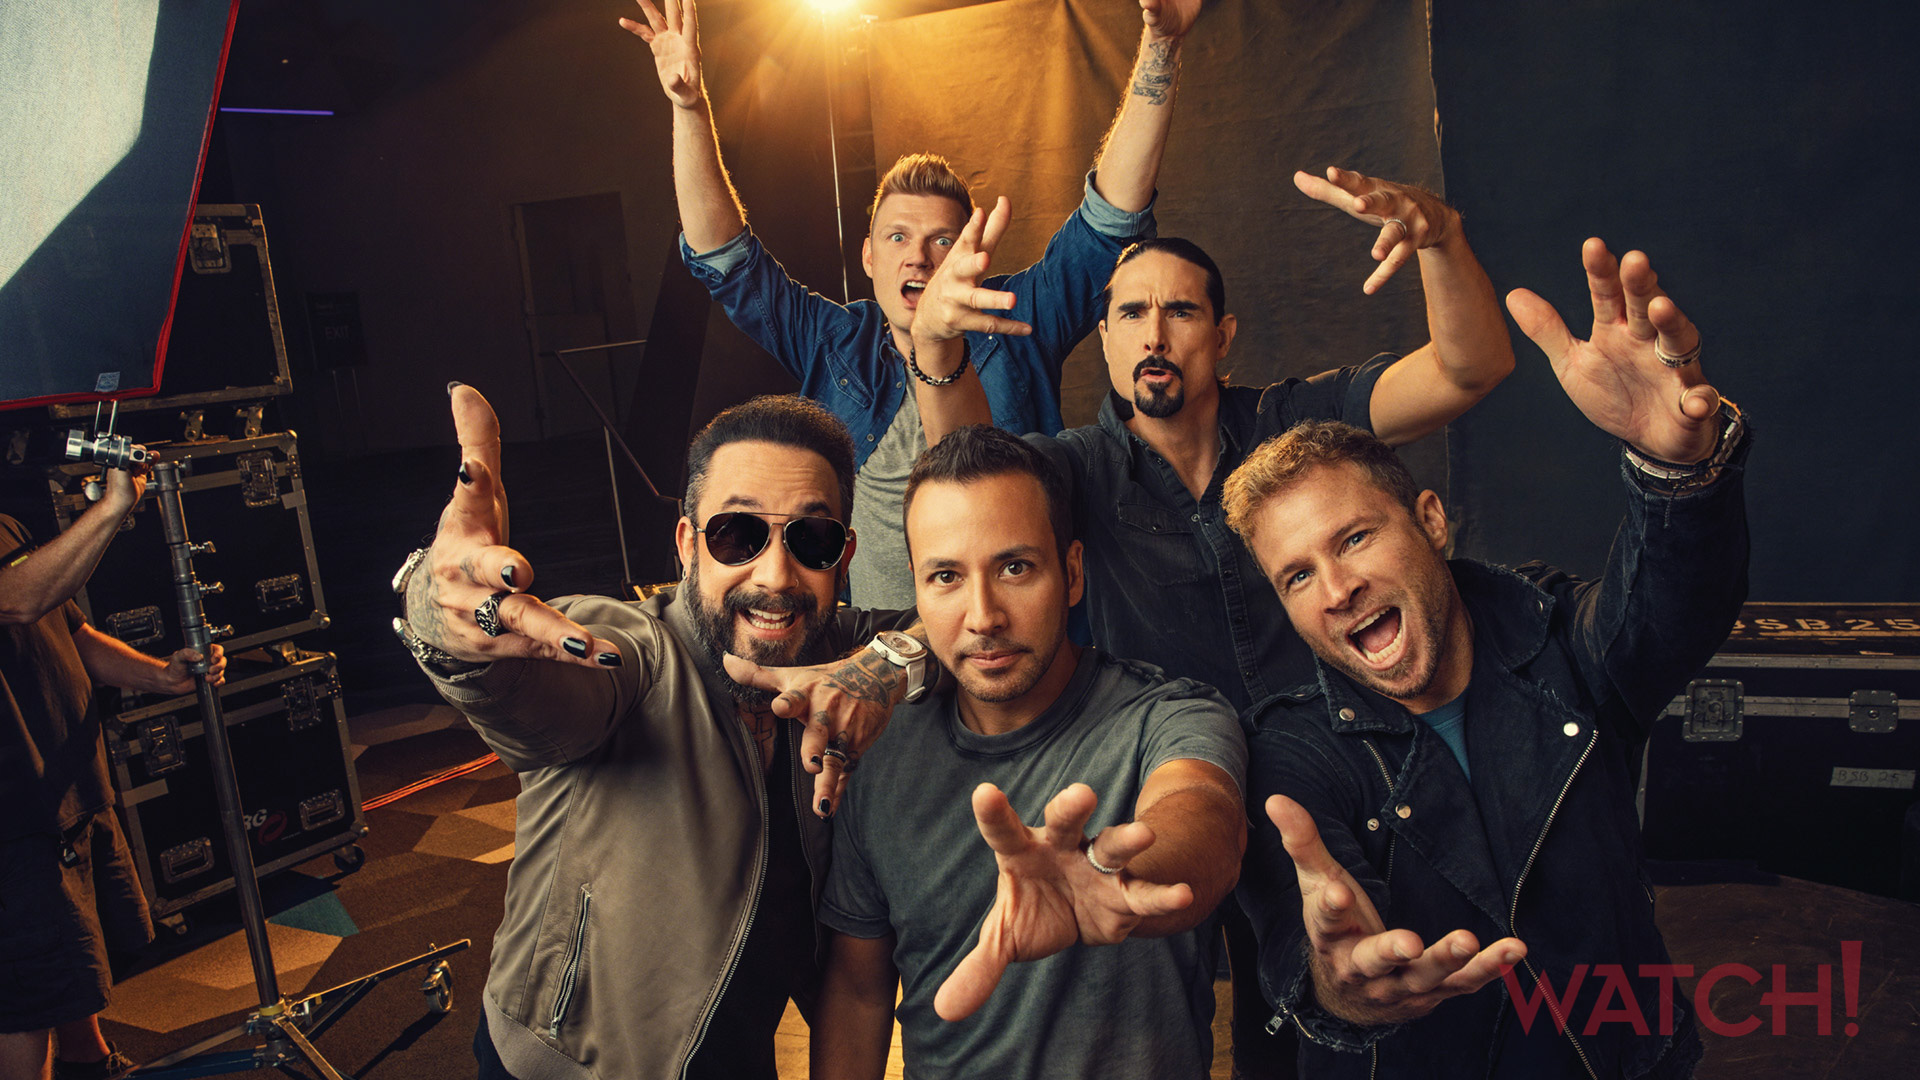 The Backstreet Boys are reaching for the gold